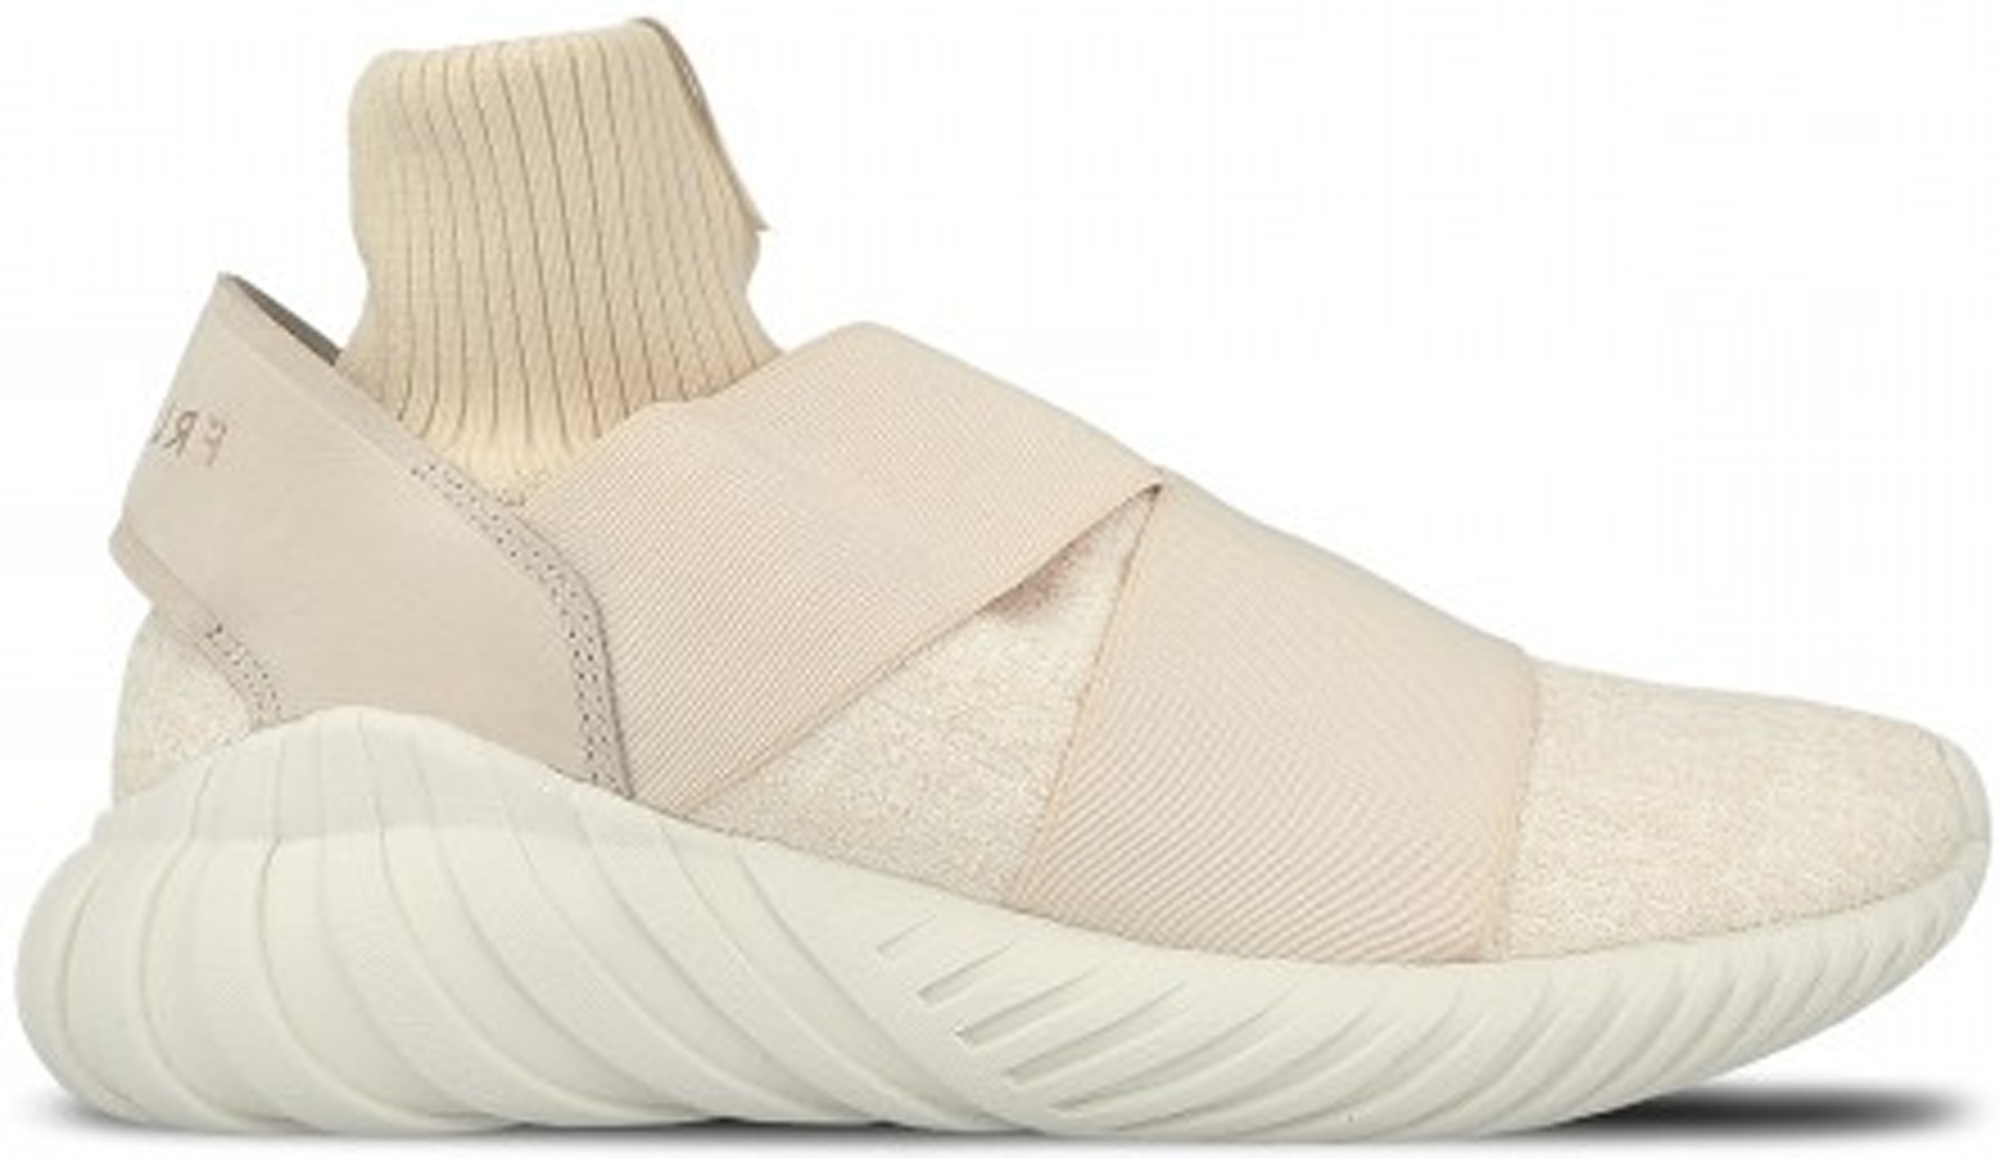 adidas Tubular Doom Overkill x Fruition Linen (W)